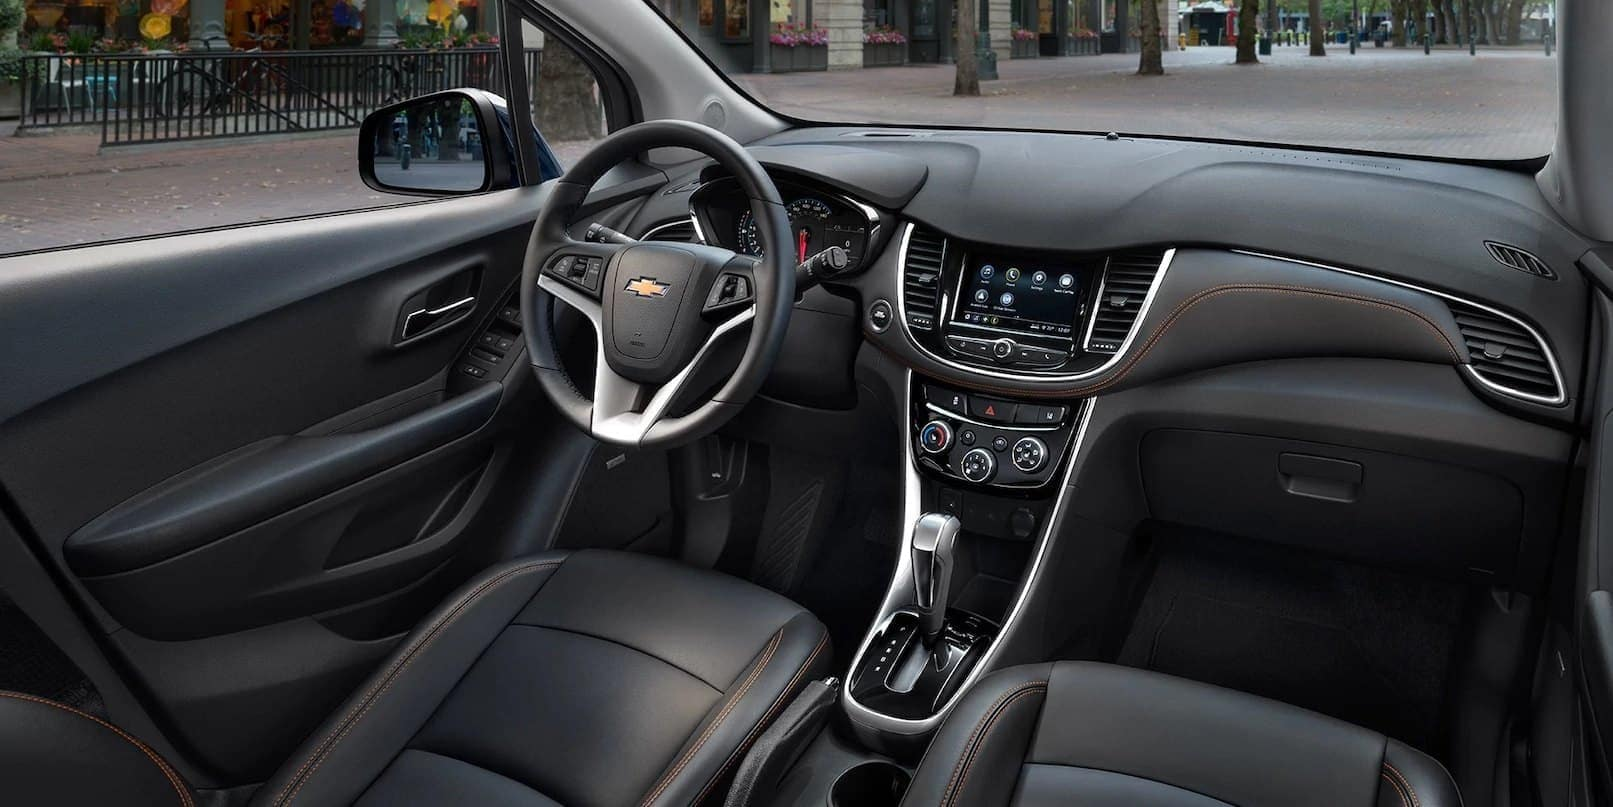 2019 Chevrolet Trax interior leather dashboard technology